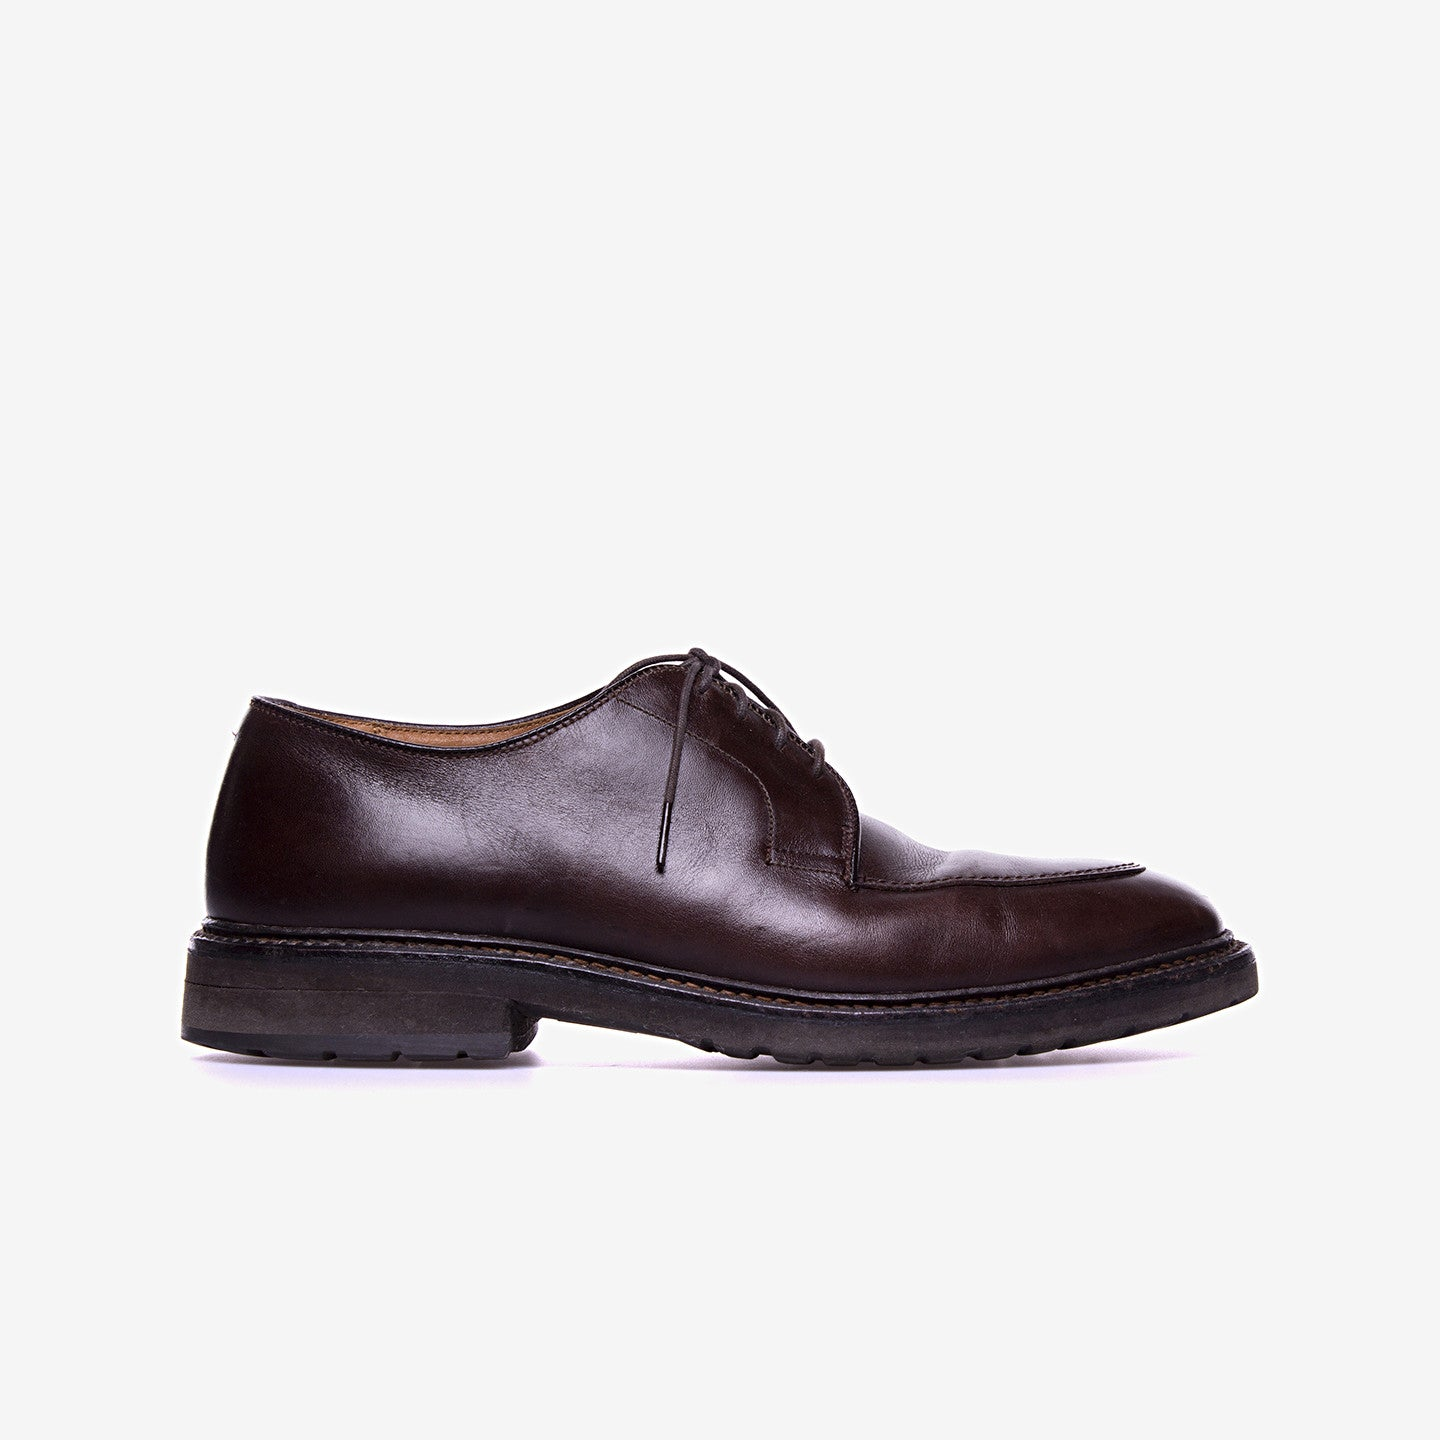 Alden / Brown Leather Oxfords